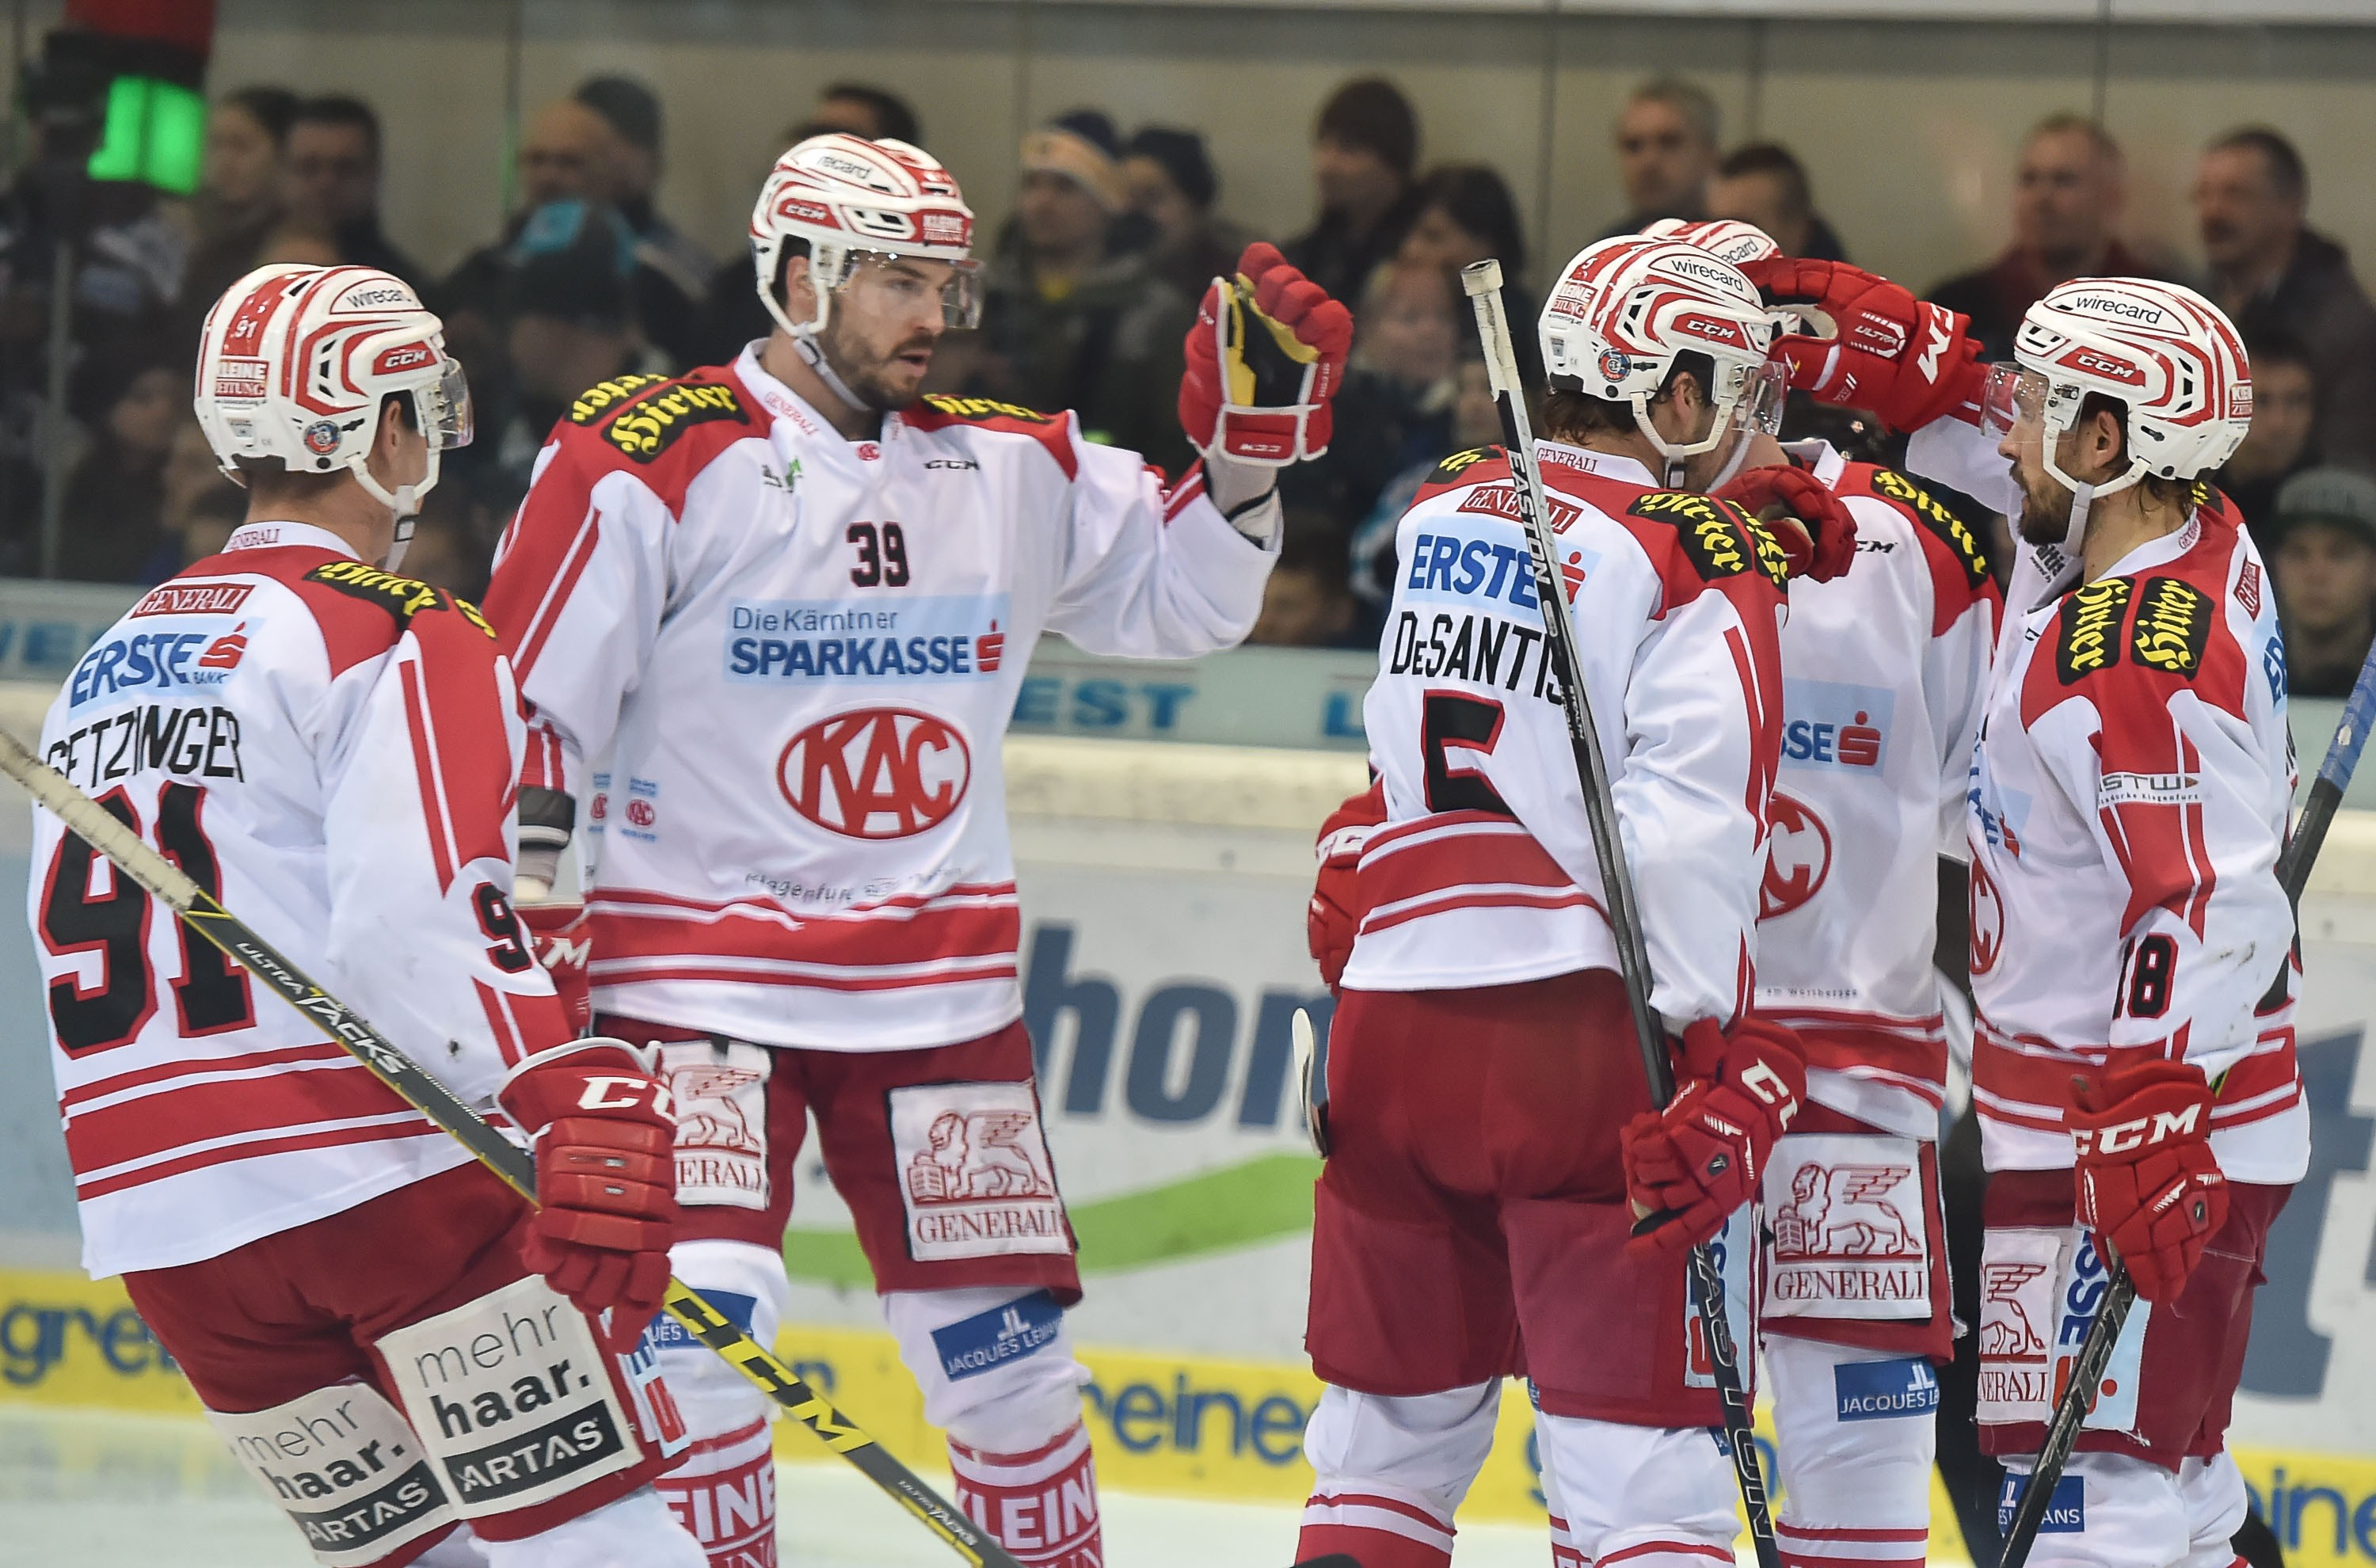 Eishockey-Liwest-Black-Wings-Linz-vs-KAC-28.12.2015-3-7-e1452785449180